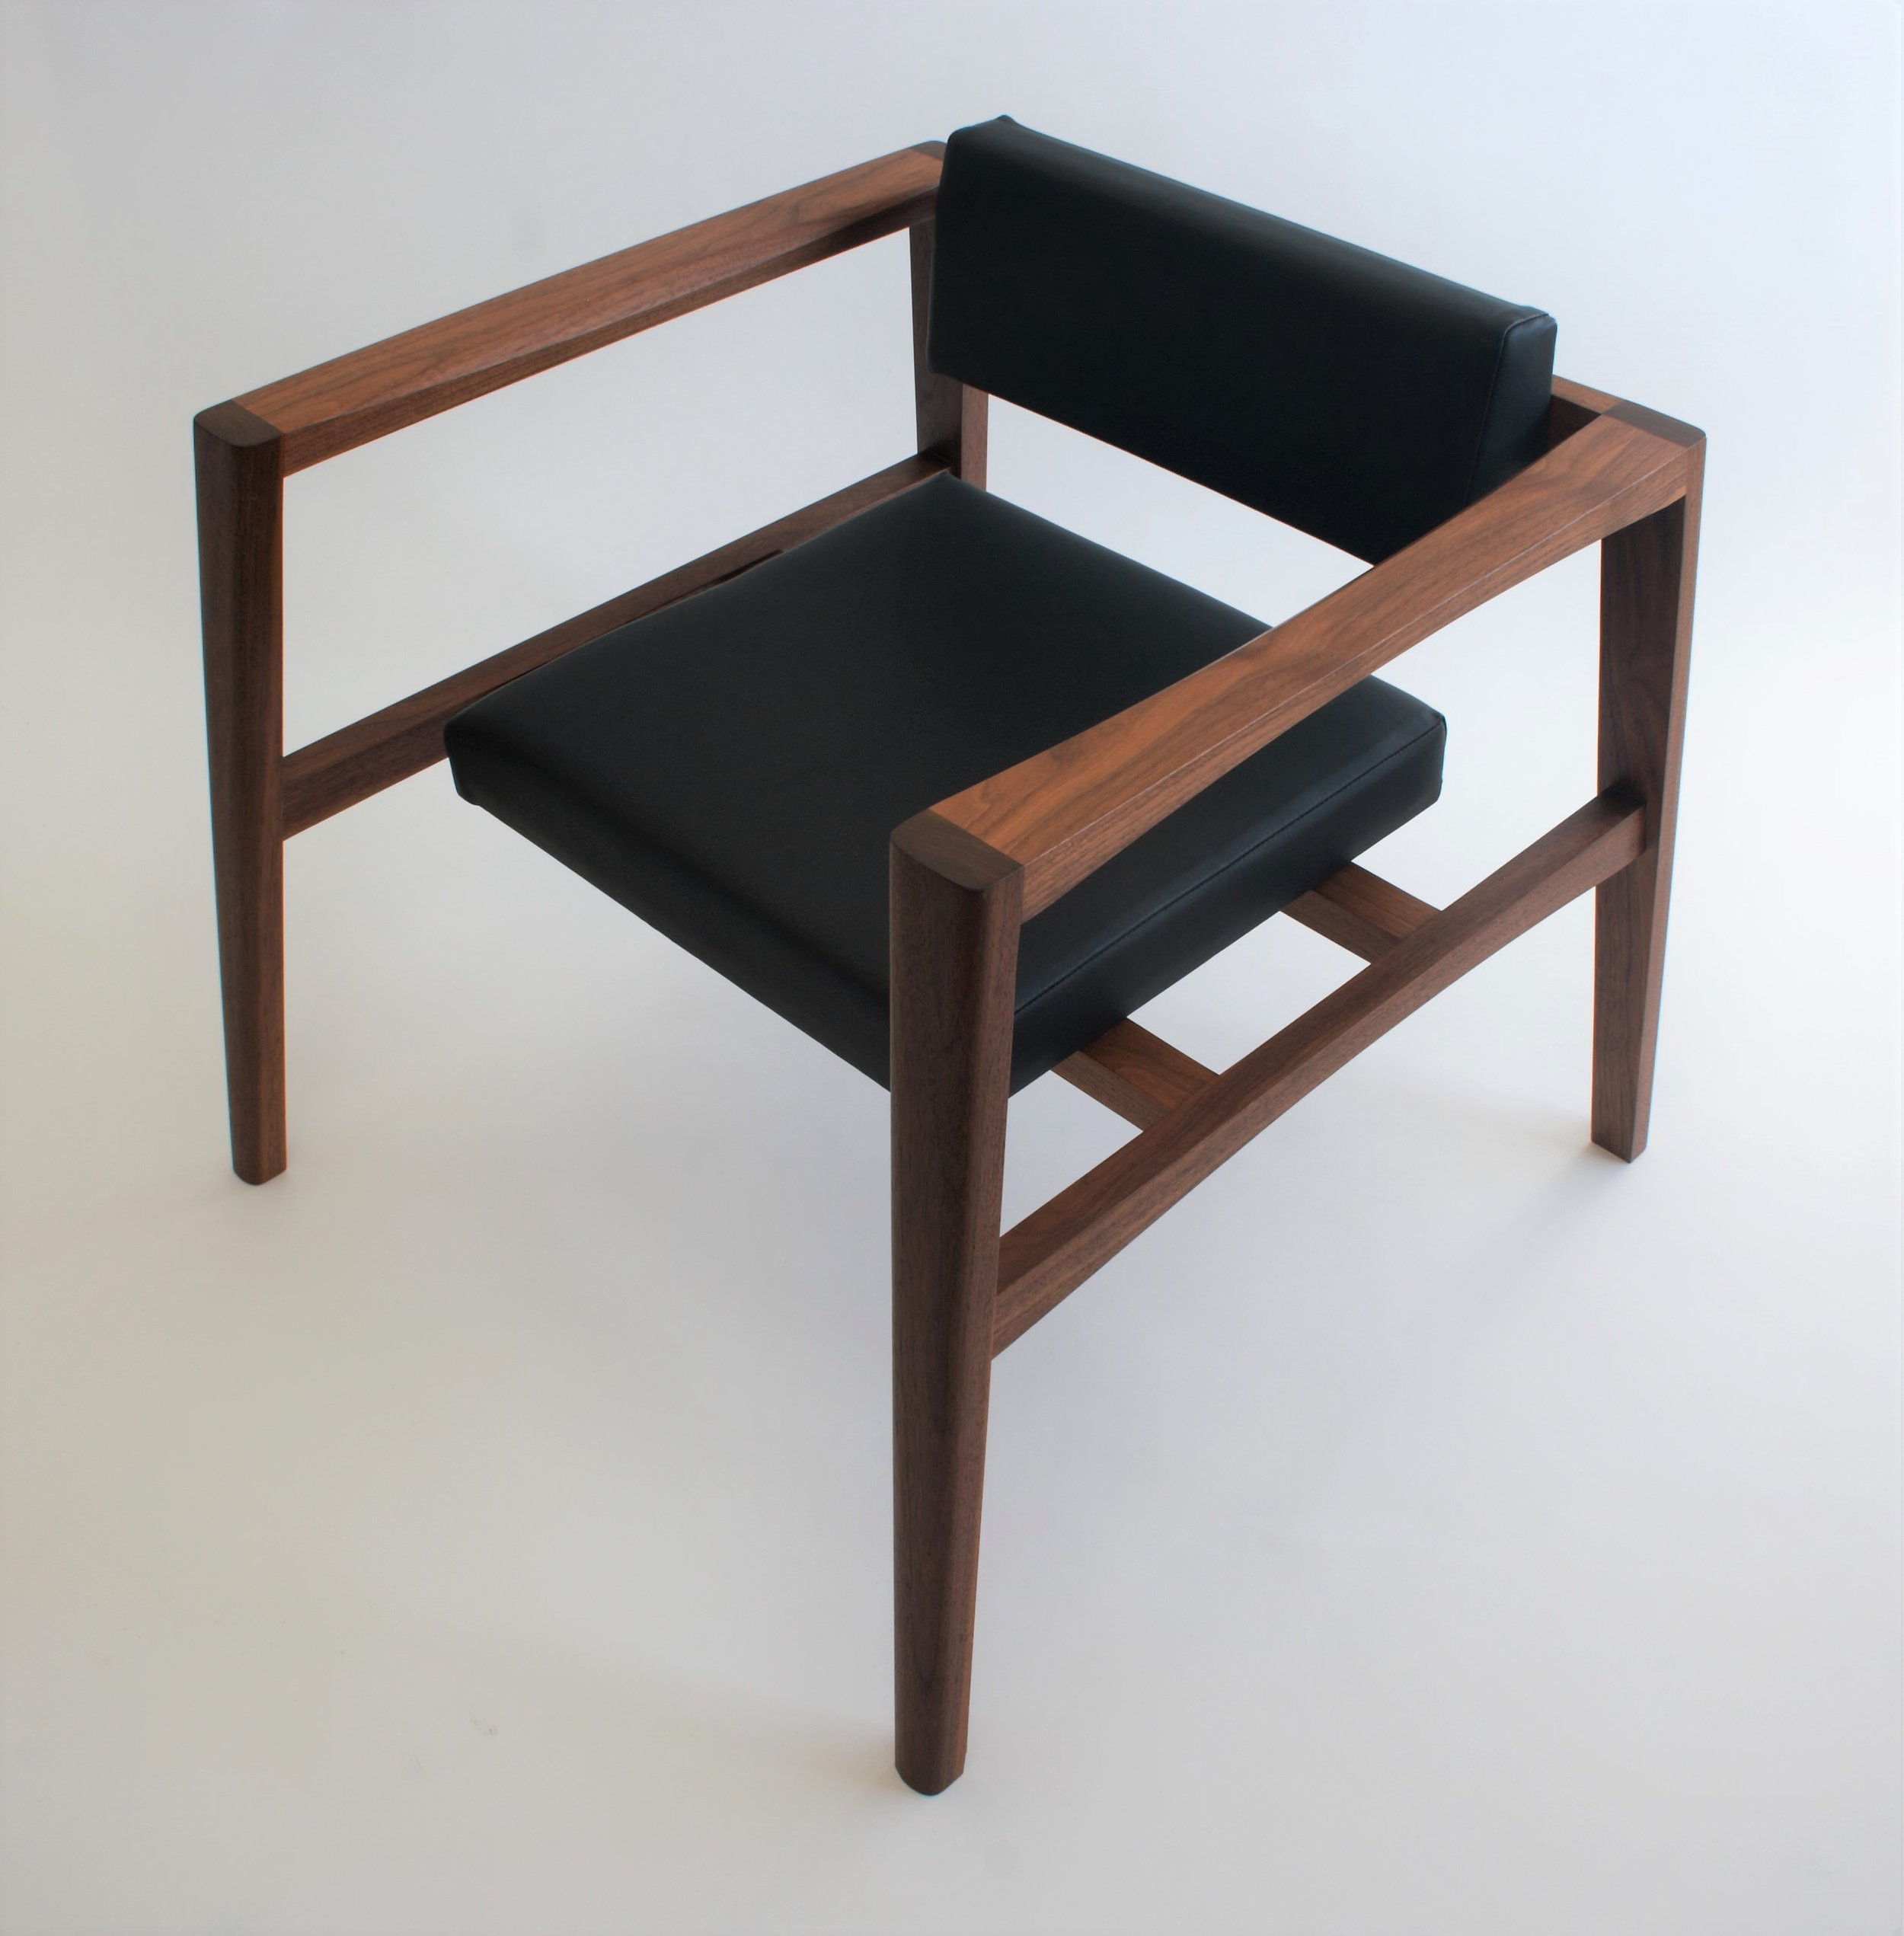 heliconia furniture spider chair (1).JPG